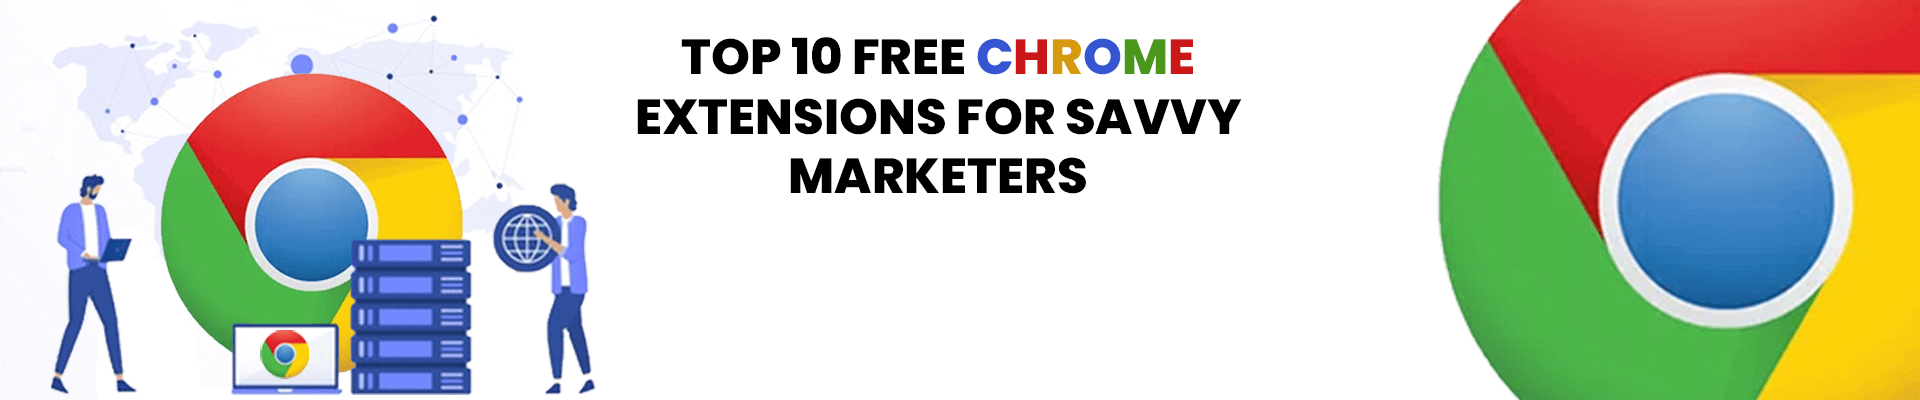 10 Best Free Chrome Extensions for Savvy Marketers [2021]